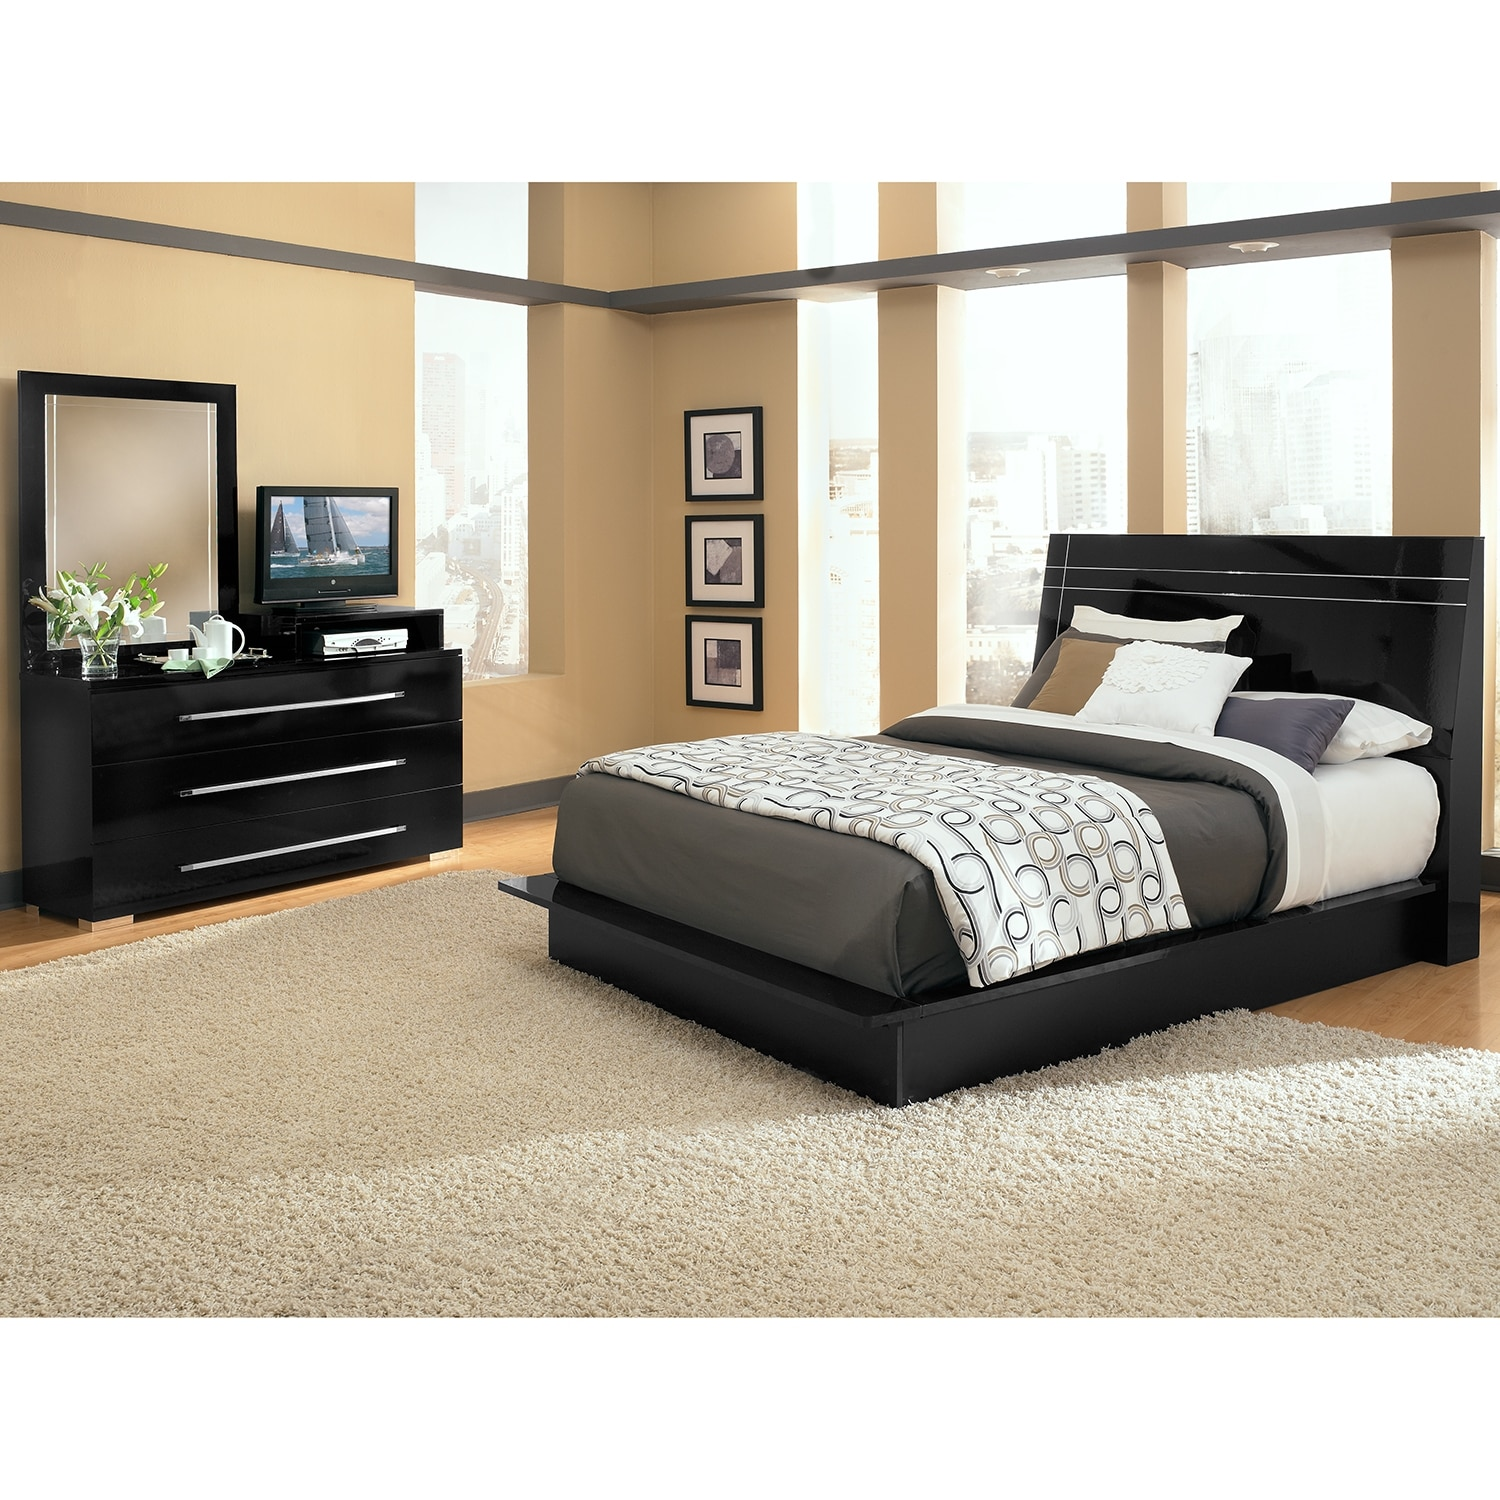 Dimora 5-Piece Queen Panel Bedroom Set with Media Dresser - Black